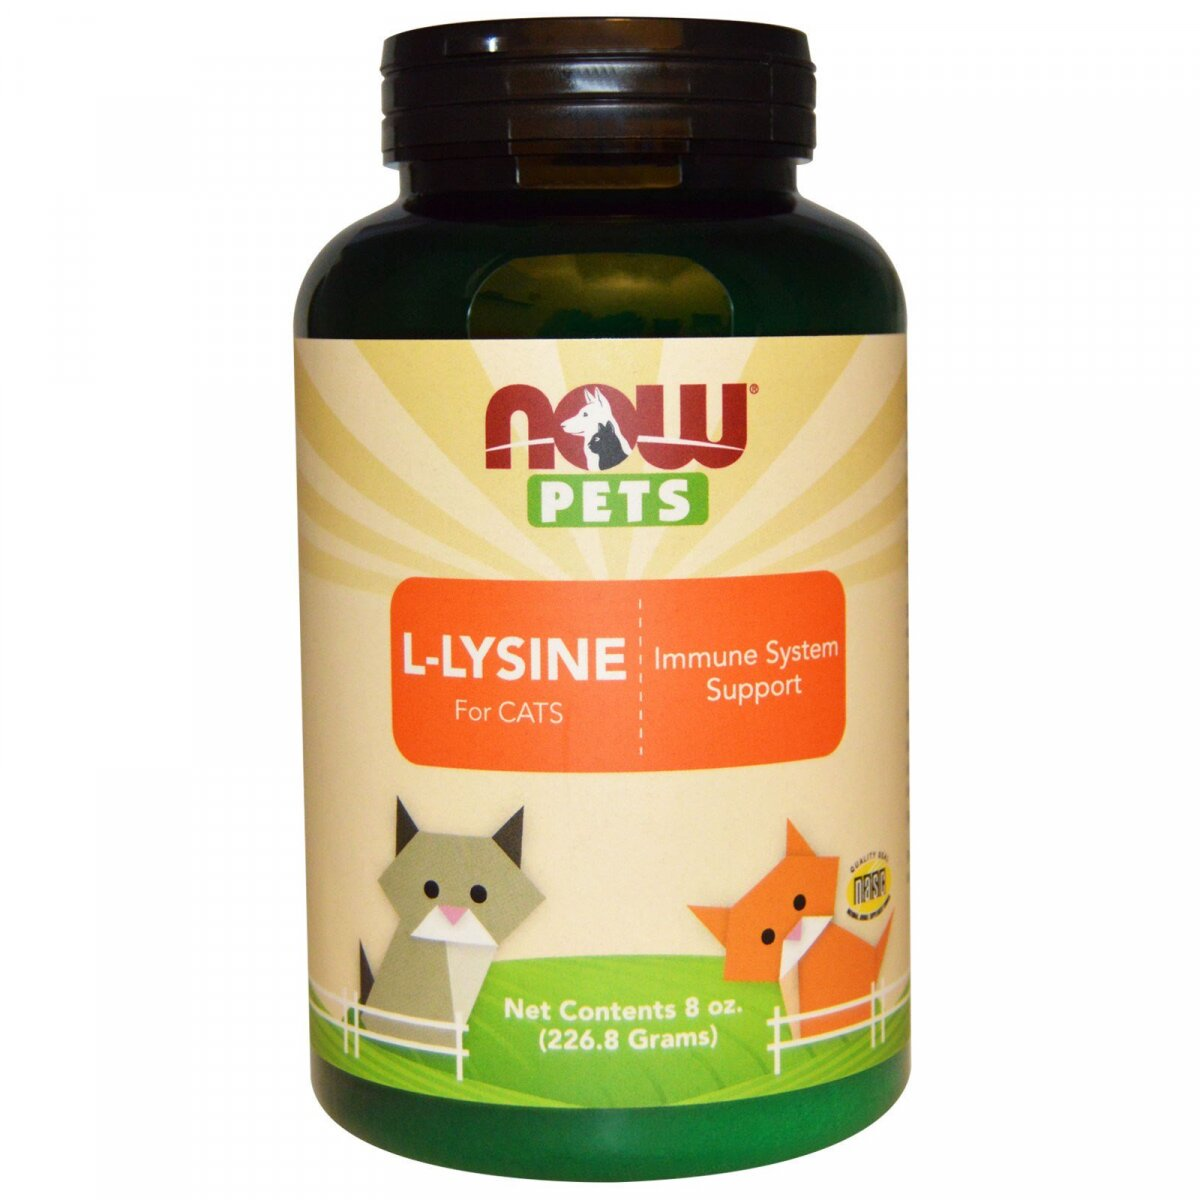 Лизин для кошек, L-Lysine, Now Foods, Now Pets, 226.8 г